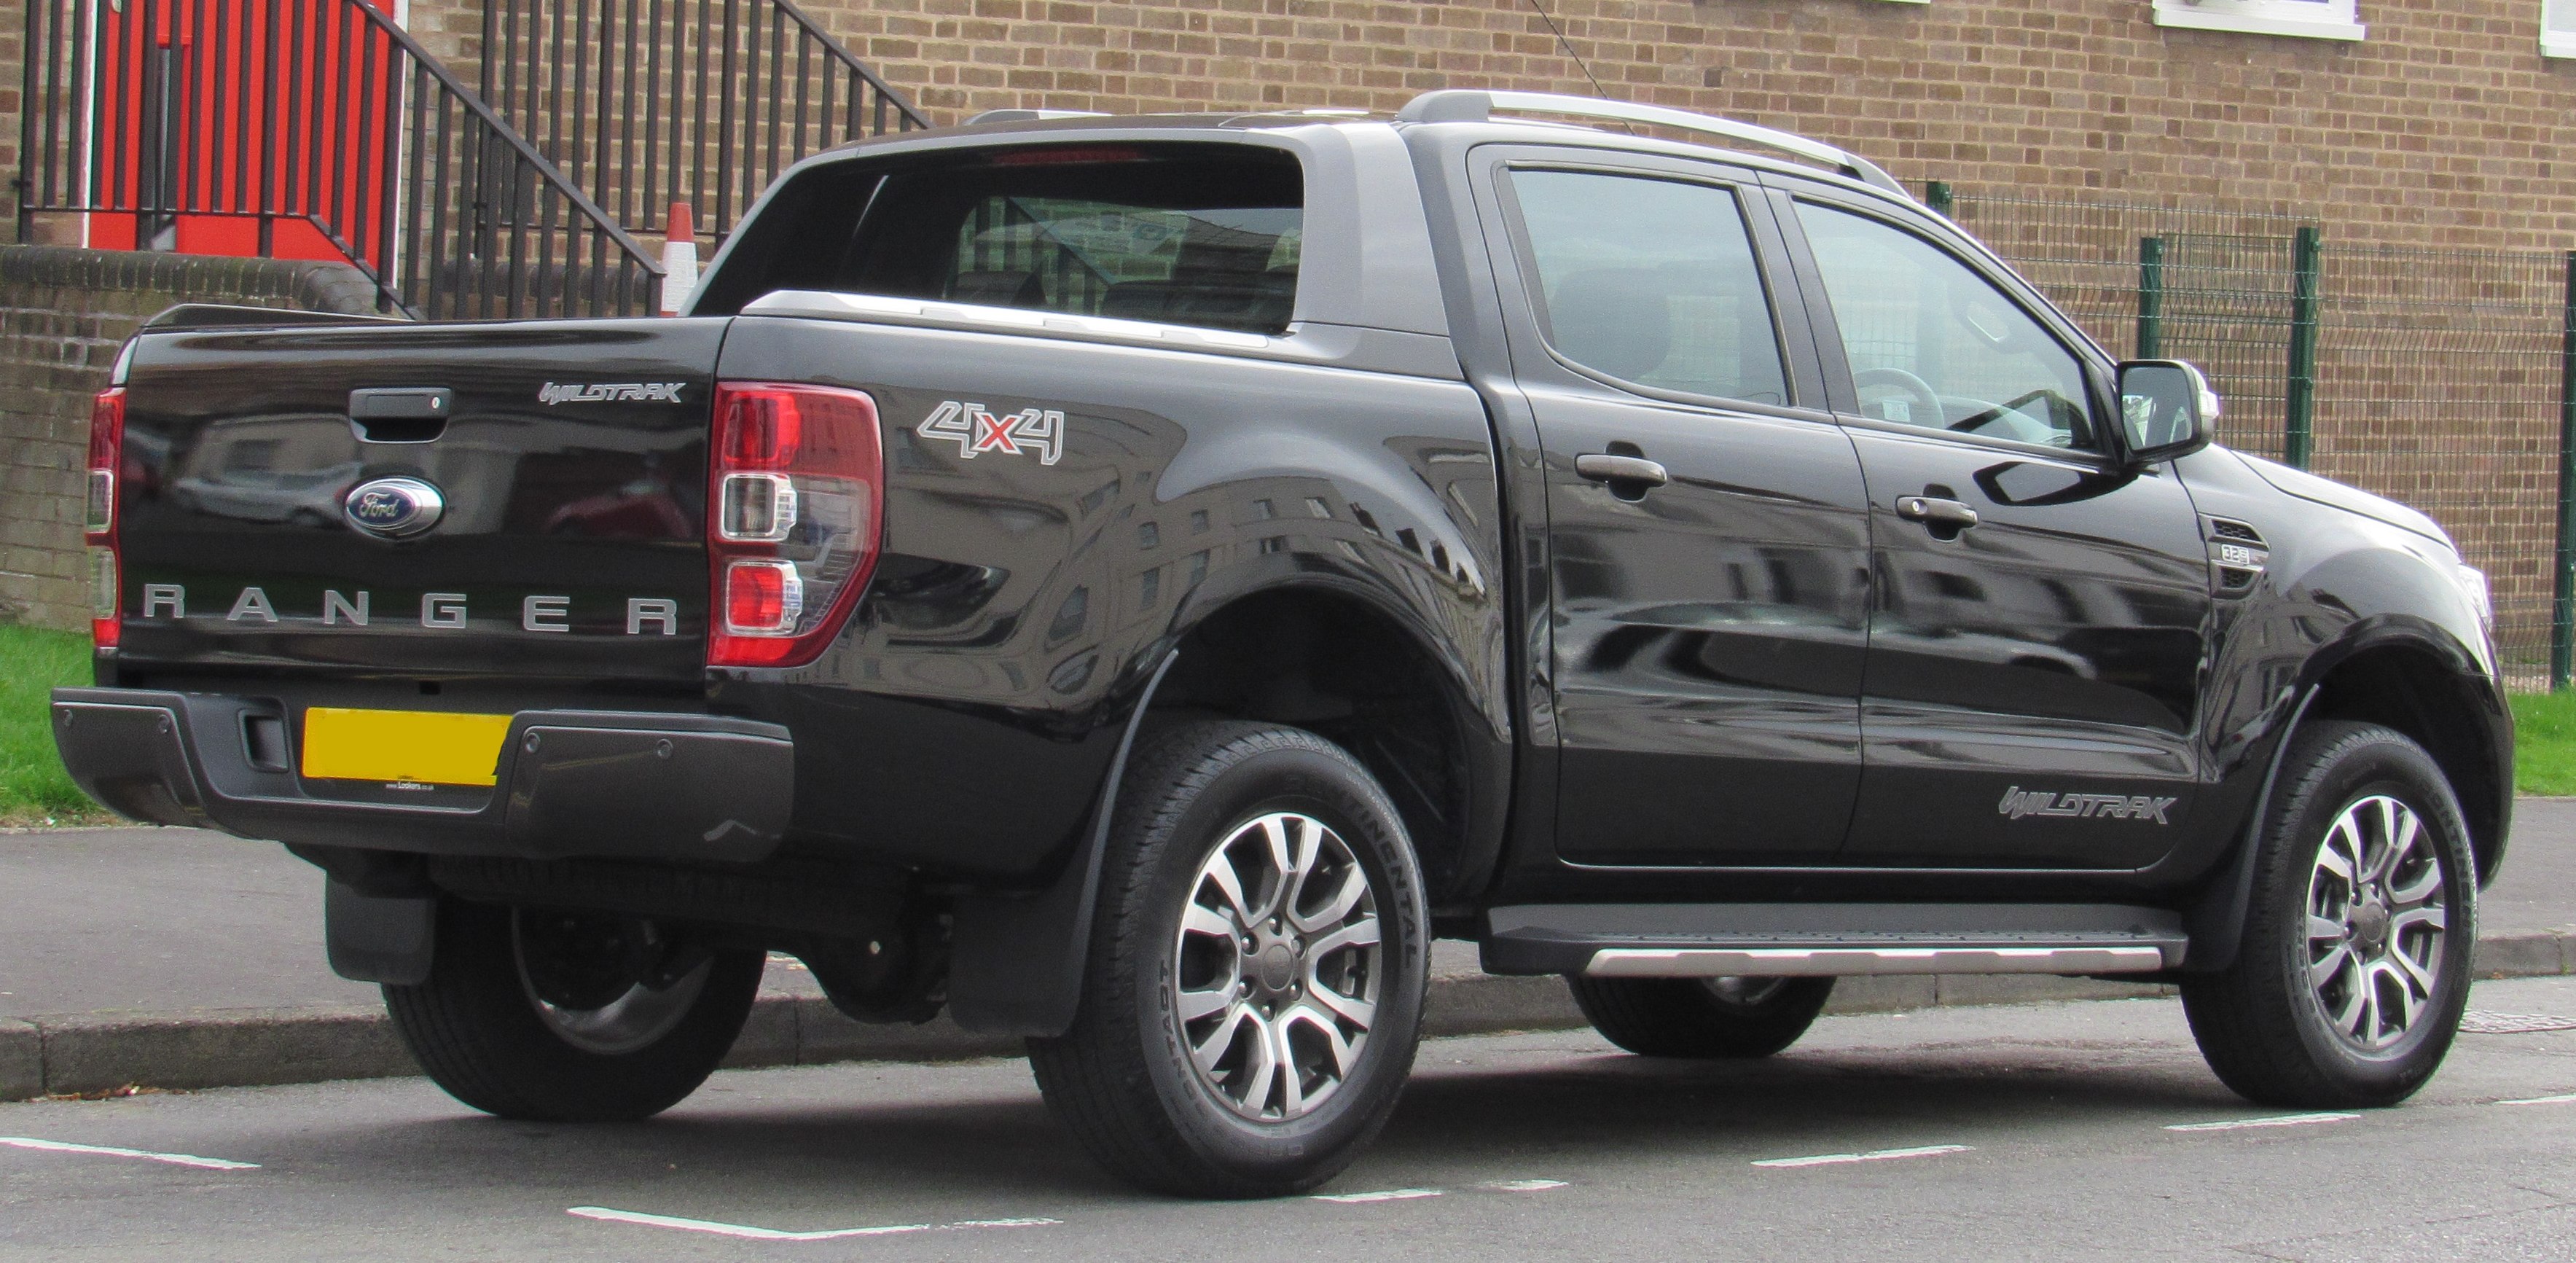 2017 Ford Ranger >> File 2017 Ford Ranger Wildtrak 4x4 Facelift 3 2 Rear Jpg Wikimedia